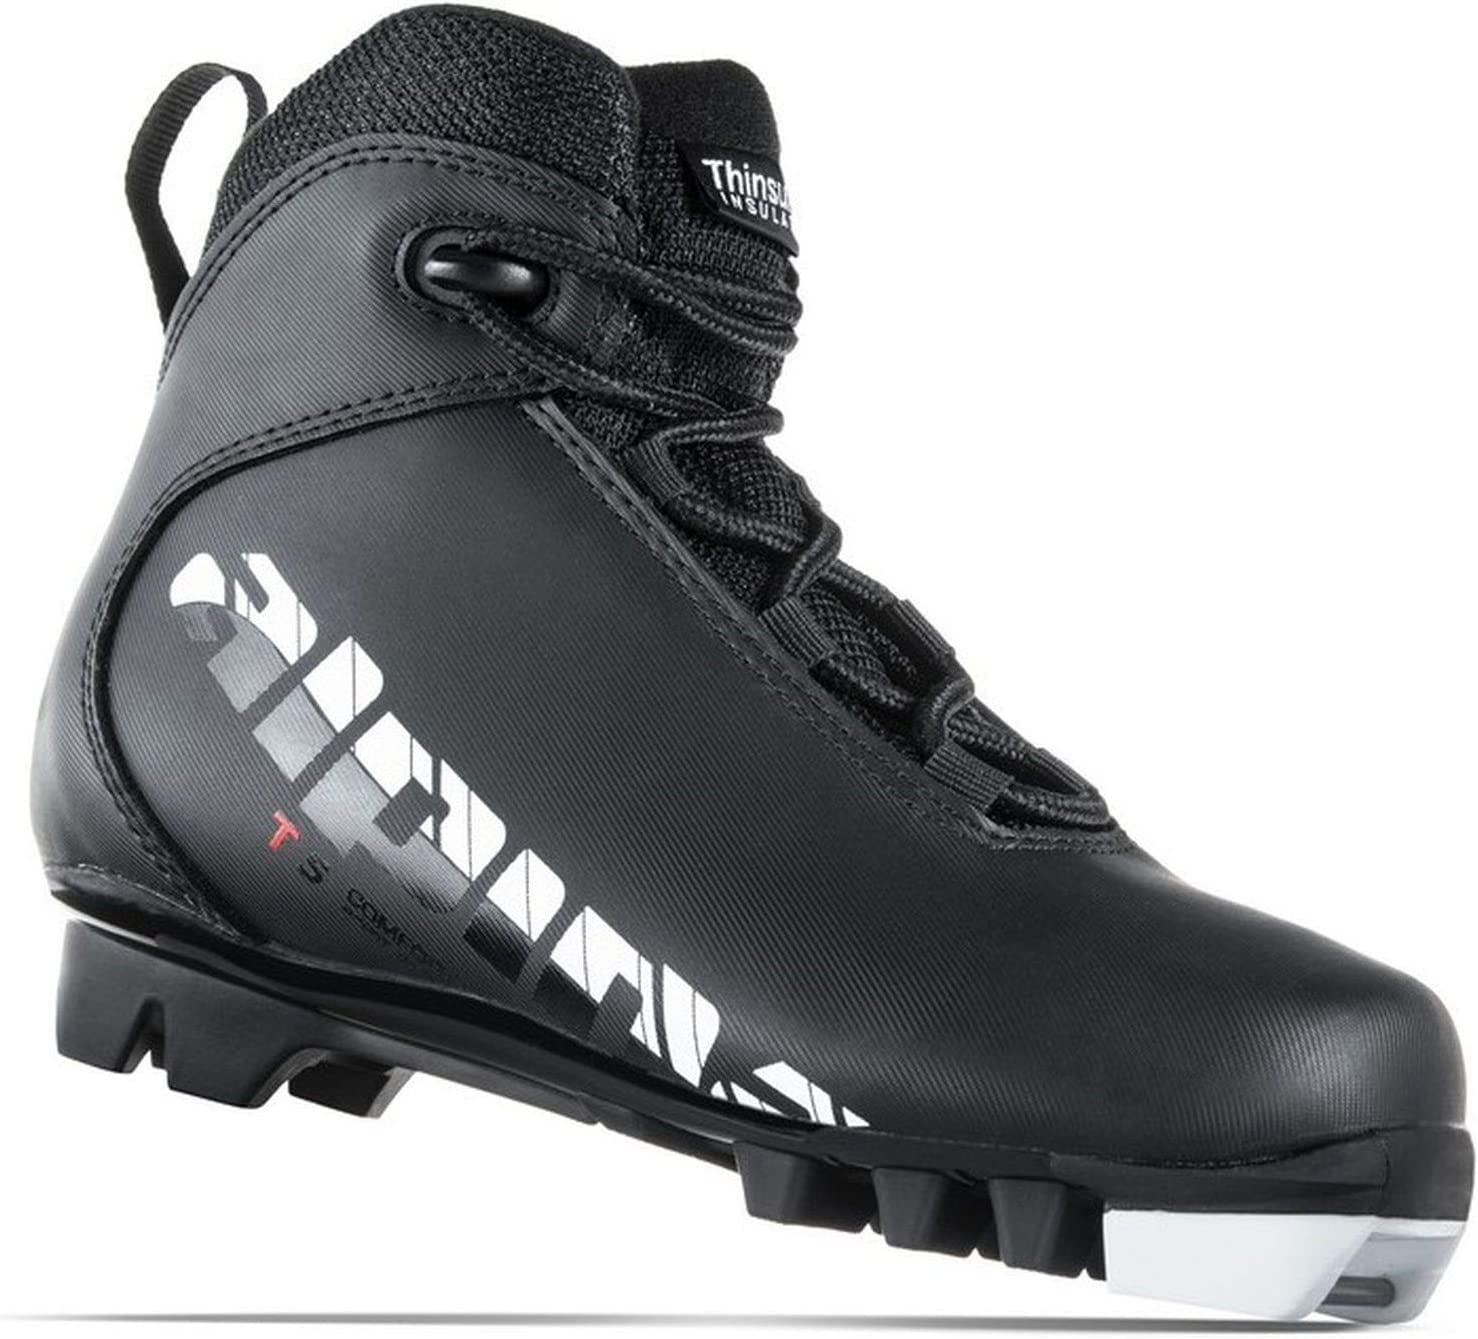 Alpina T5 Brand Cheap Sale Venue Jr Sale special price Cross Country Ski Youth - 21 Boot 20